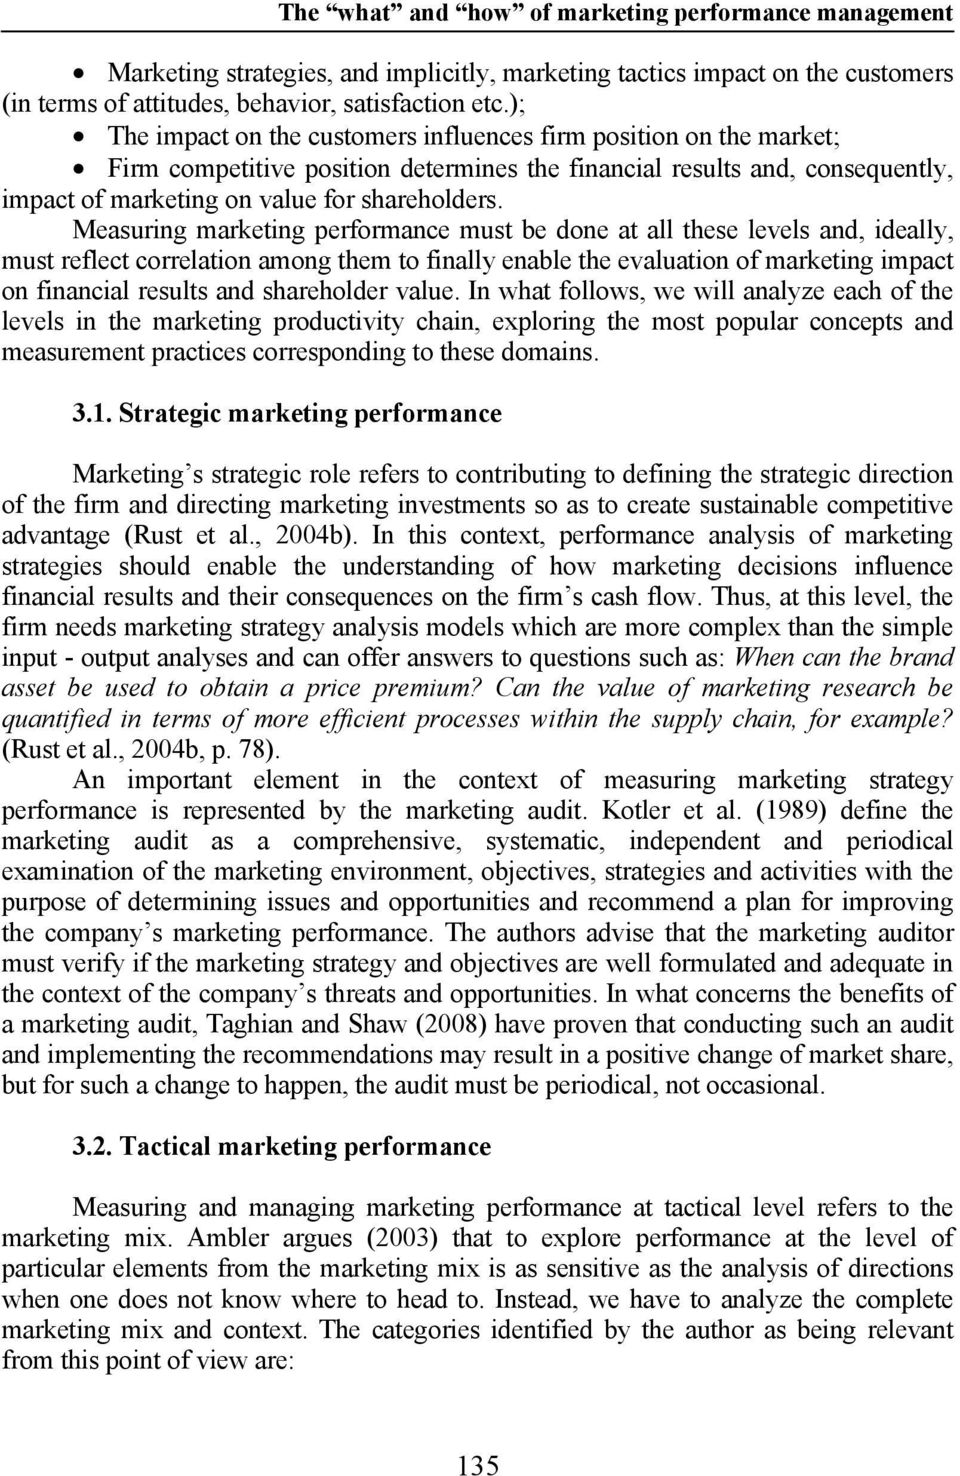 Measuring marketing performance must be done at all these levels and, ideally, must reflect correlation among them to finally enable the evaluation of marketing impact on financial results and